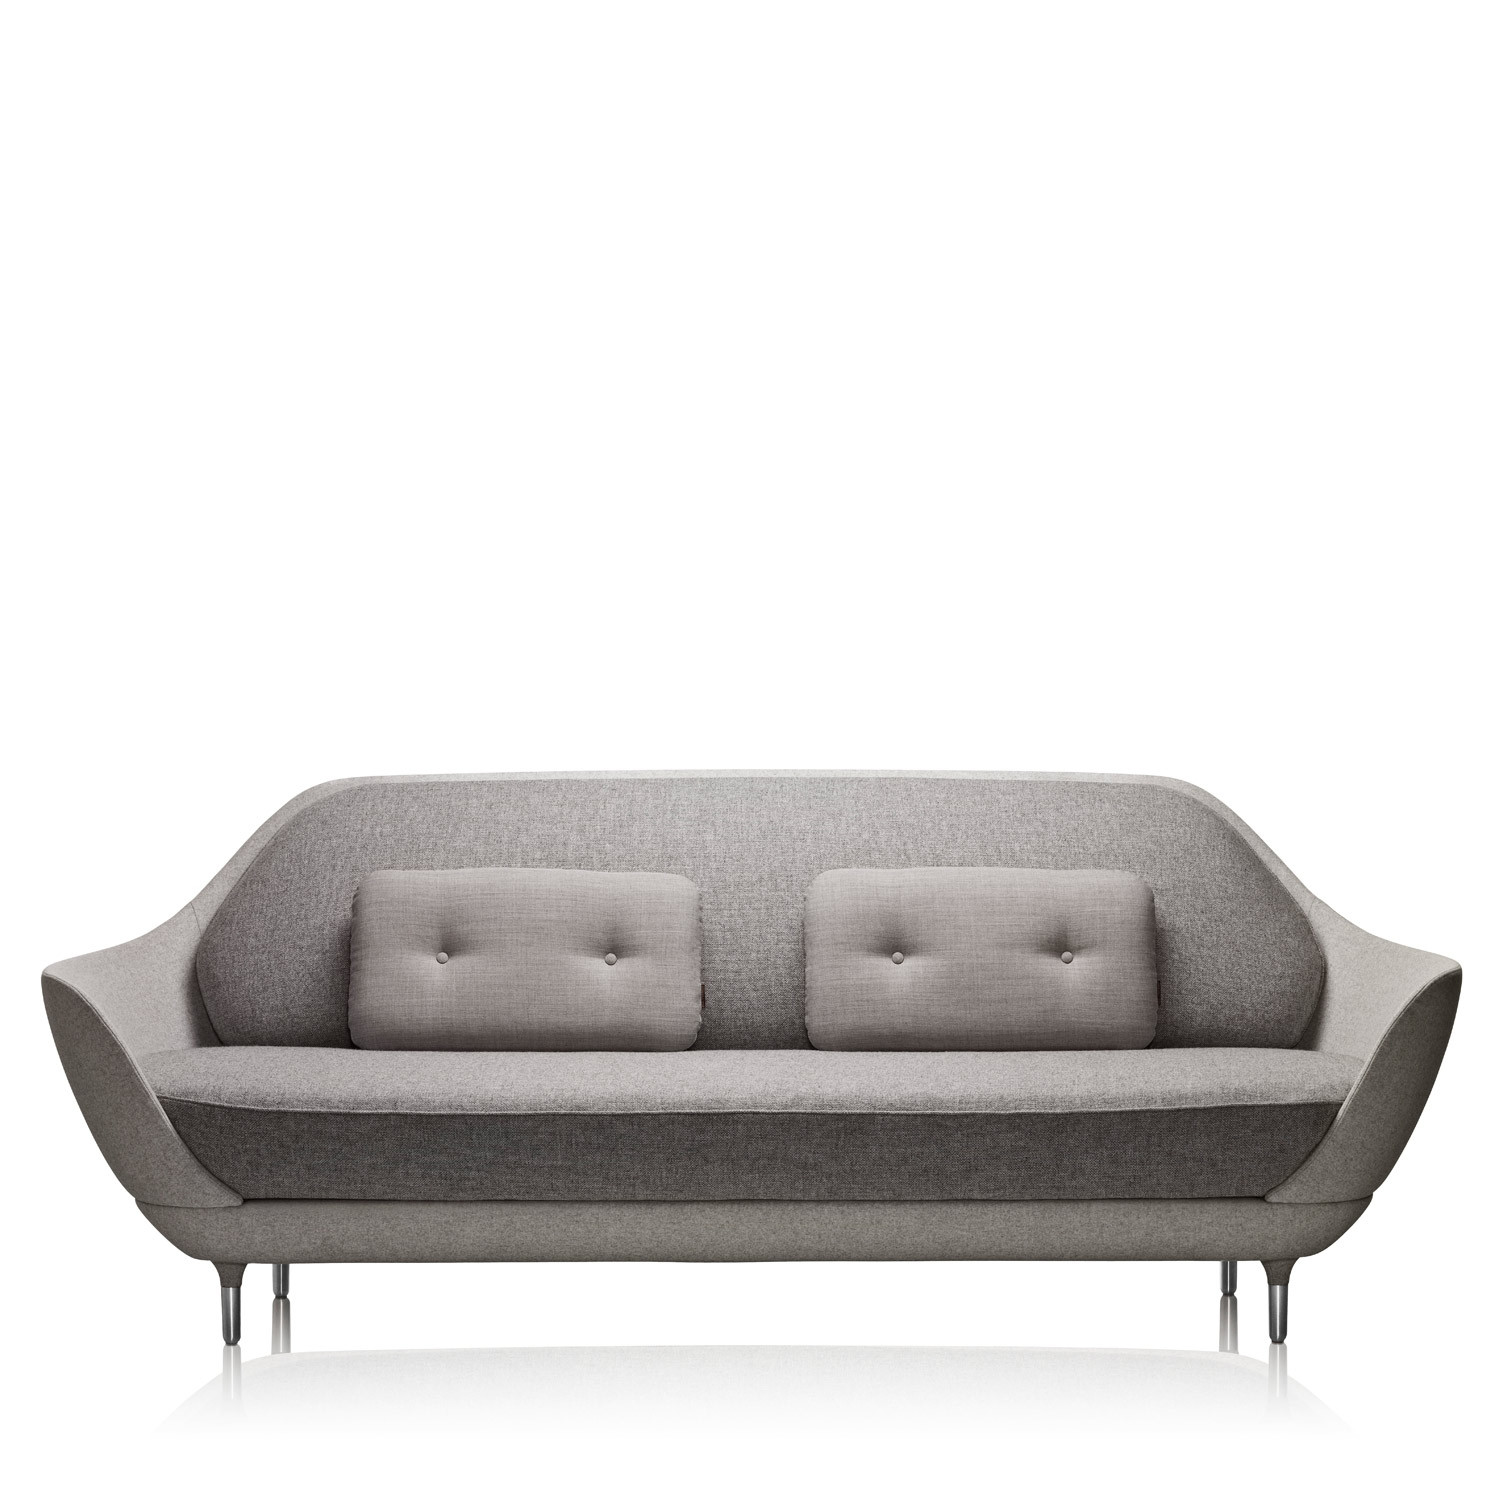 Favn 3-seater Sofa